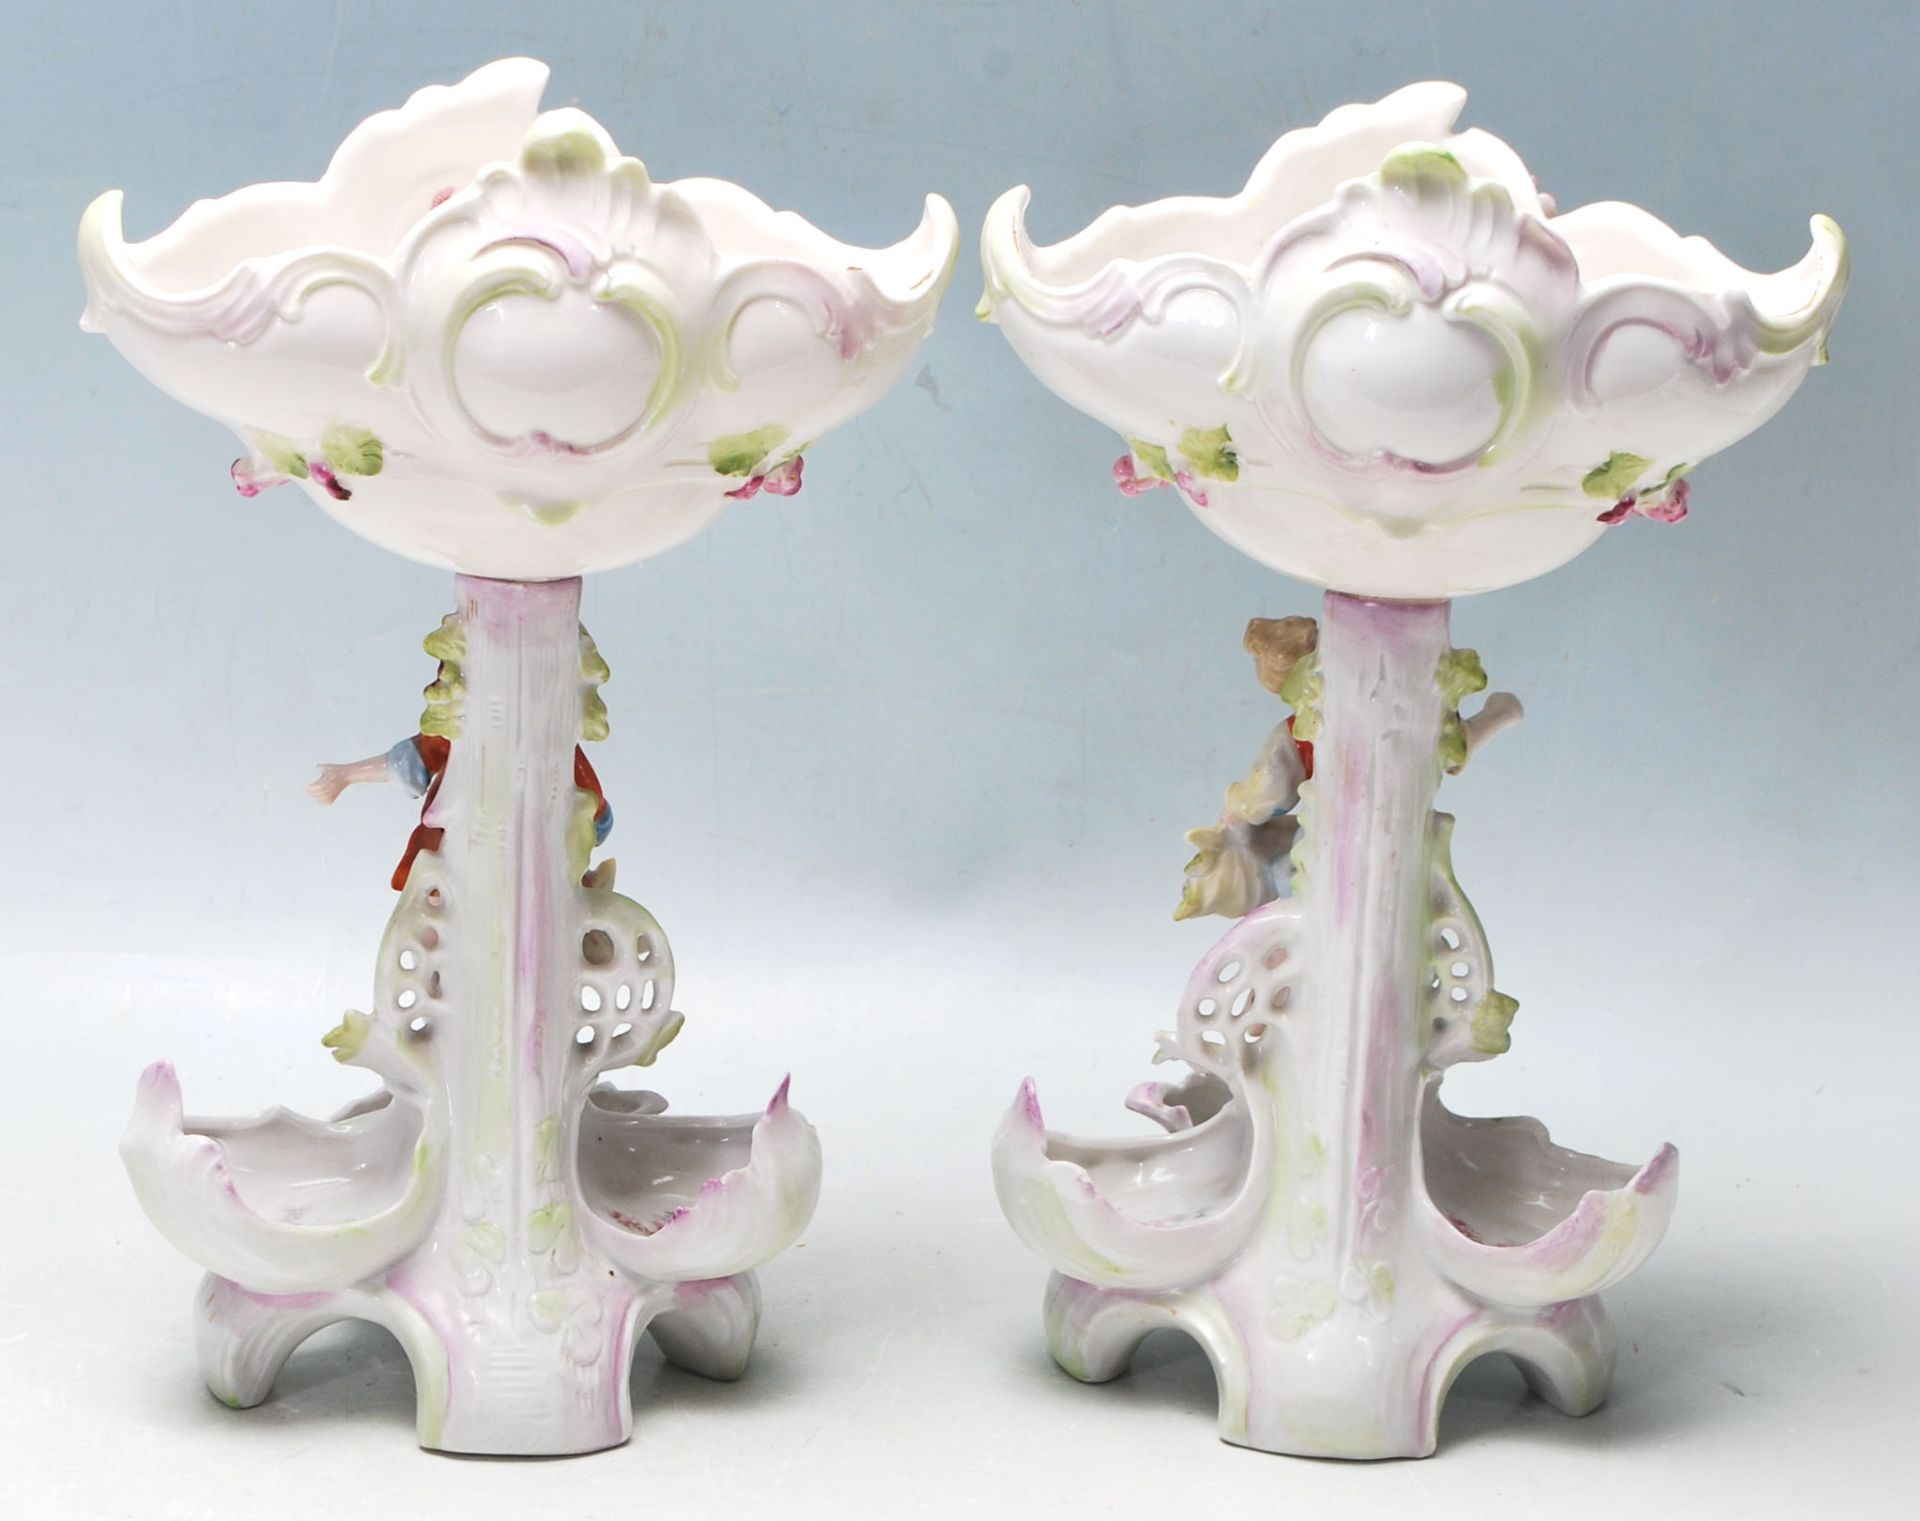 19TH CENTURY VICTORIAN GERMAN PORCELAIN CENTRE PIECES - Image 6 of 7